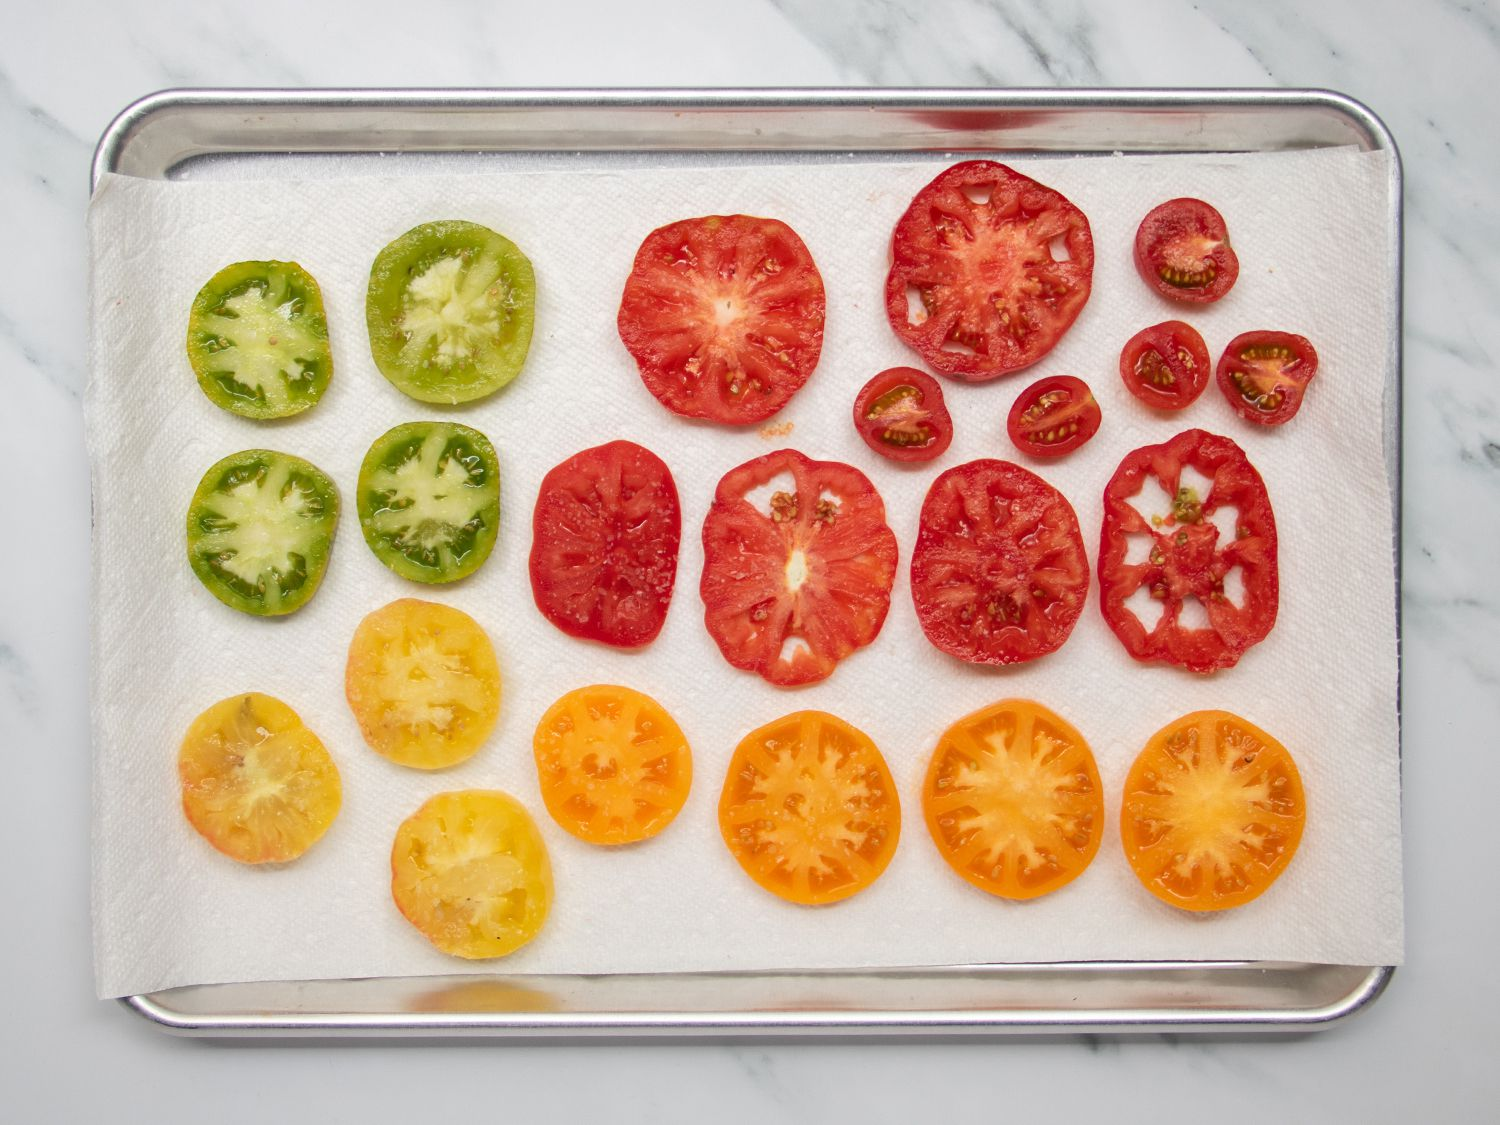 Sliced tomatoes in variety placed on a paper towel-lined rimmed baking sheet